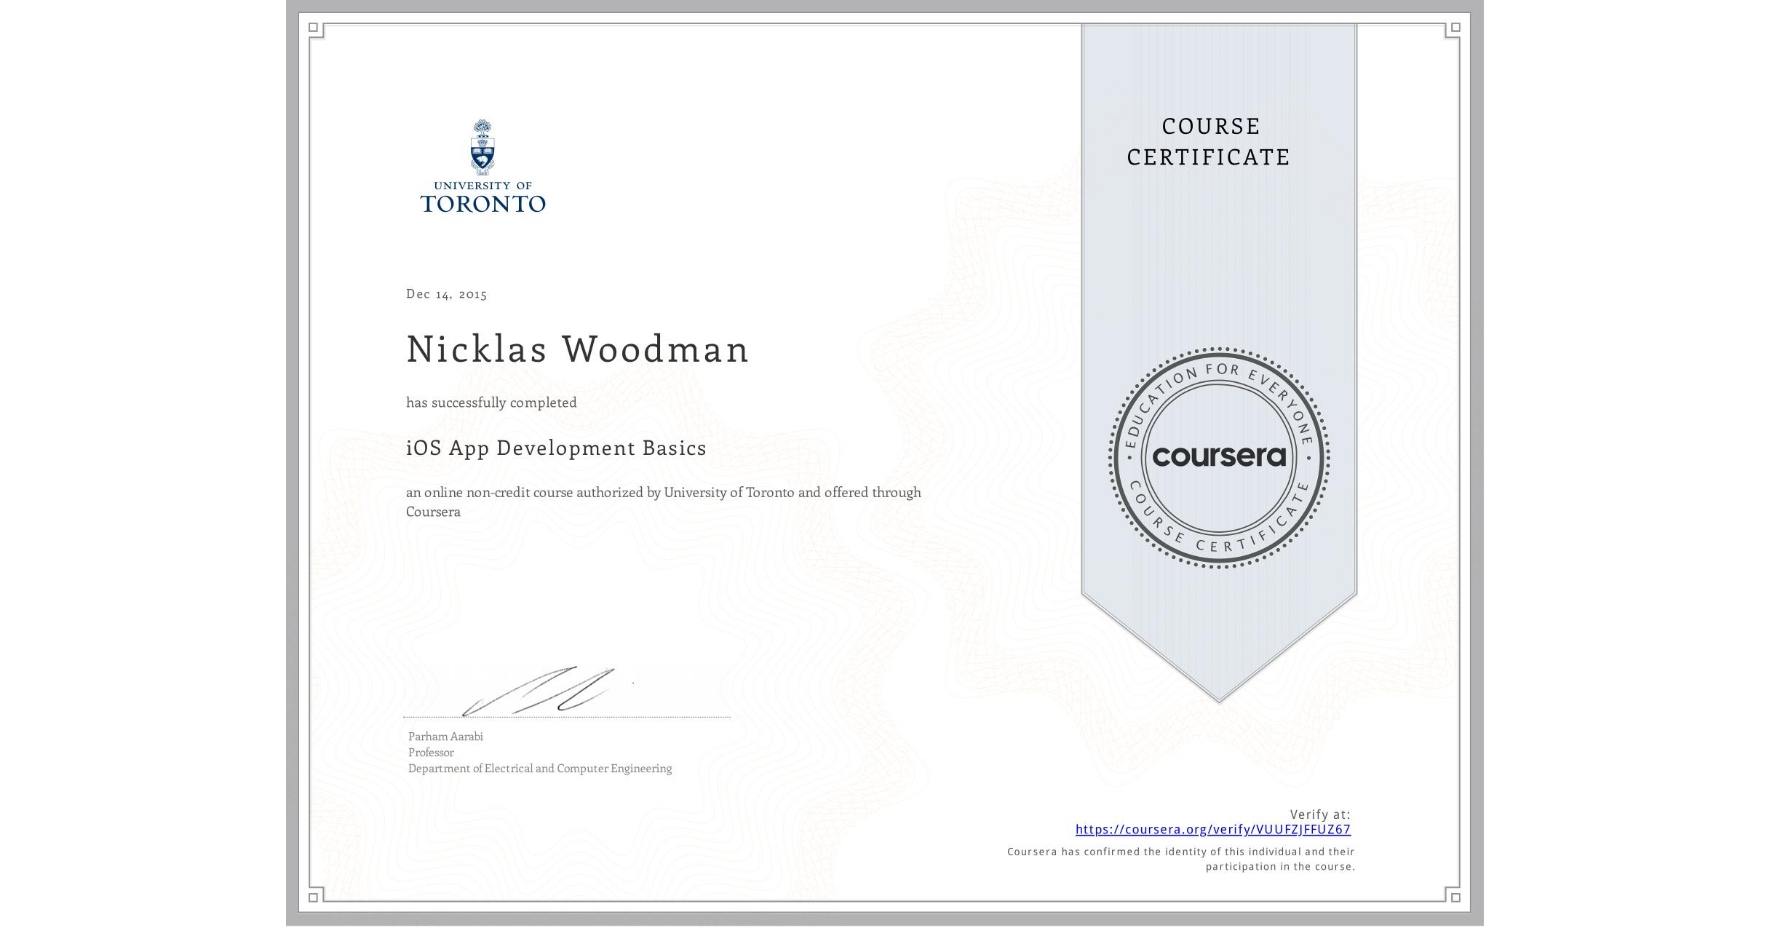 View certificate for Nicklas Woodman, iOS App Development Basics, an online non-credit course authorized by University of Toronto and offered through Coursera